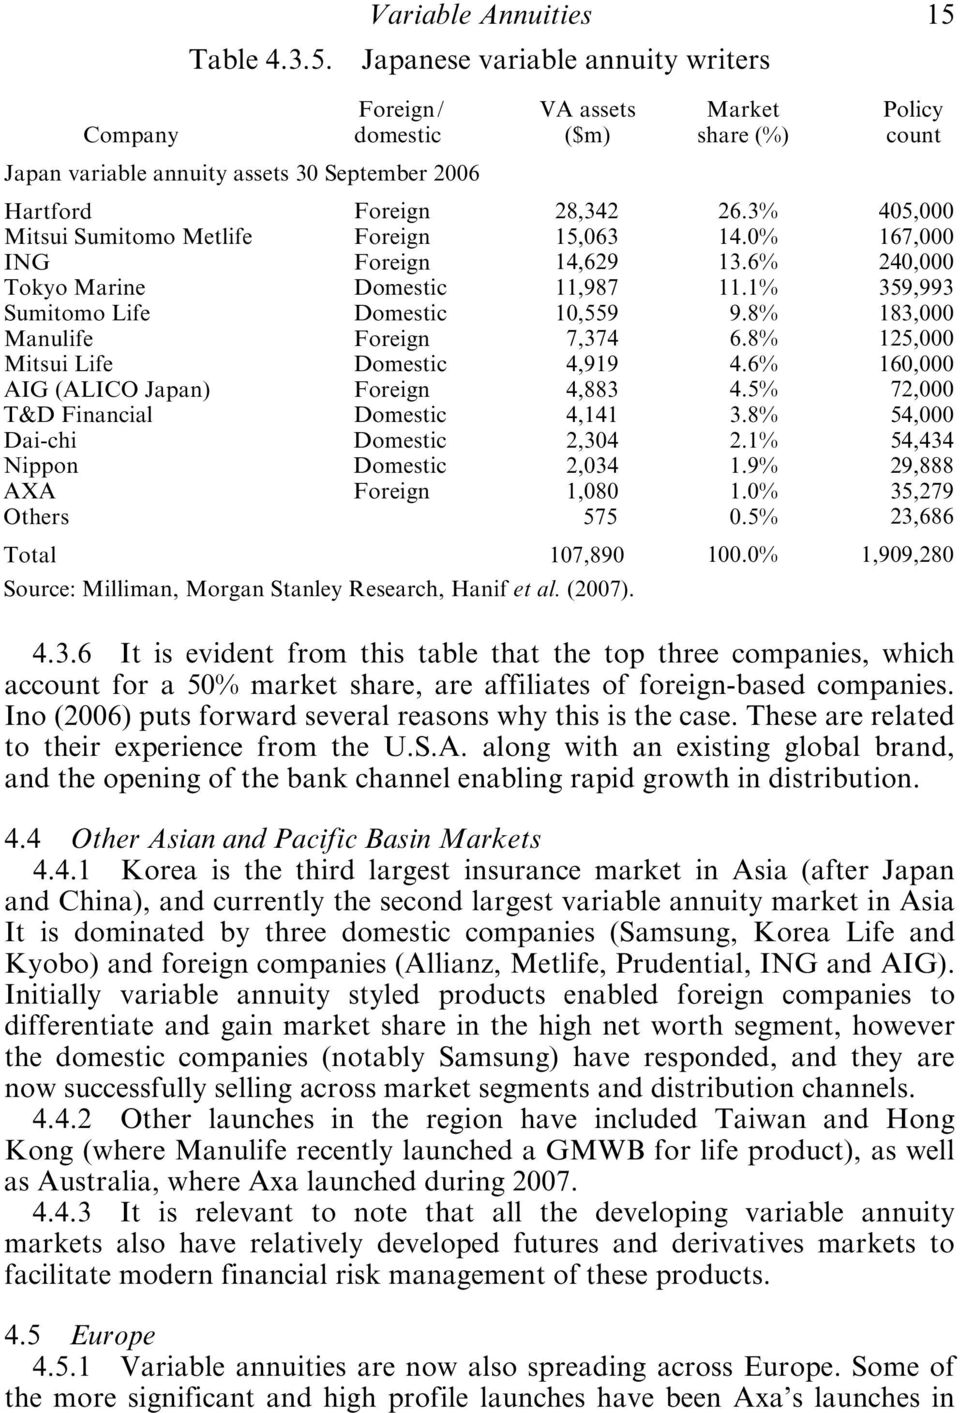 Manulife Mitsui Life AIG (ALICO Japan) T&D Financial Dai-chi Nippon AXA Others Total Foreign Foreign Foreign Domestic Domestic Foreign Domestic Foreign Domestic Domestic Domestic Foreign VA assets